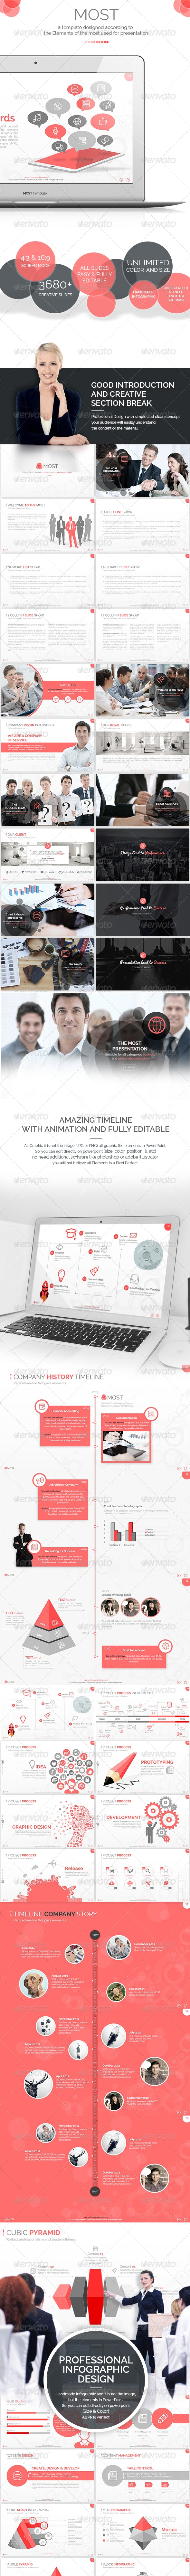 Most - The Most PowerPoint Template - Business PowerPoint Templates